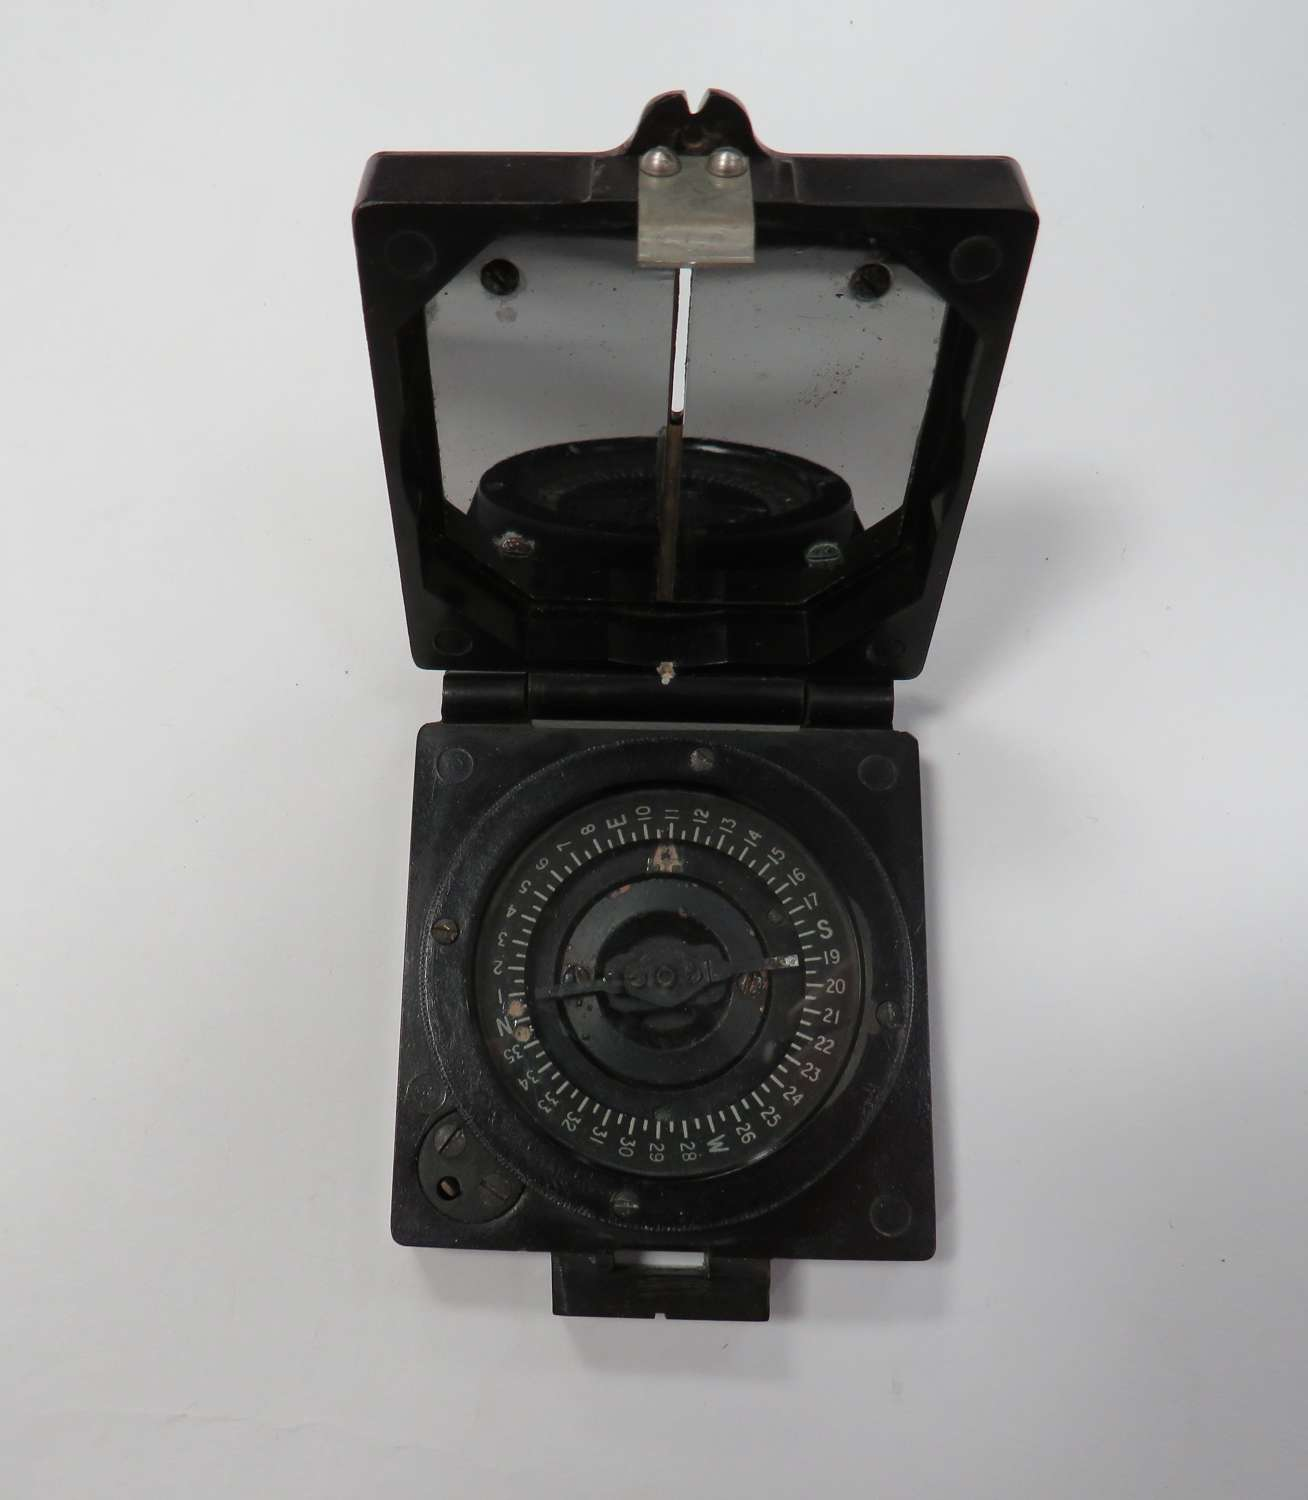 WW2 British Army Marching Compass